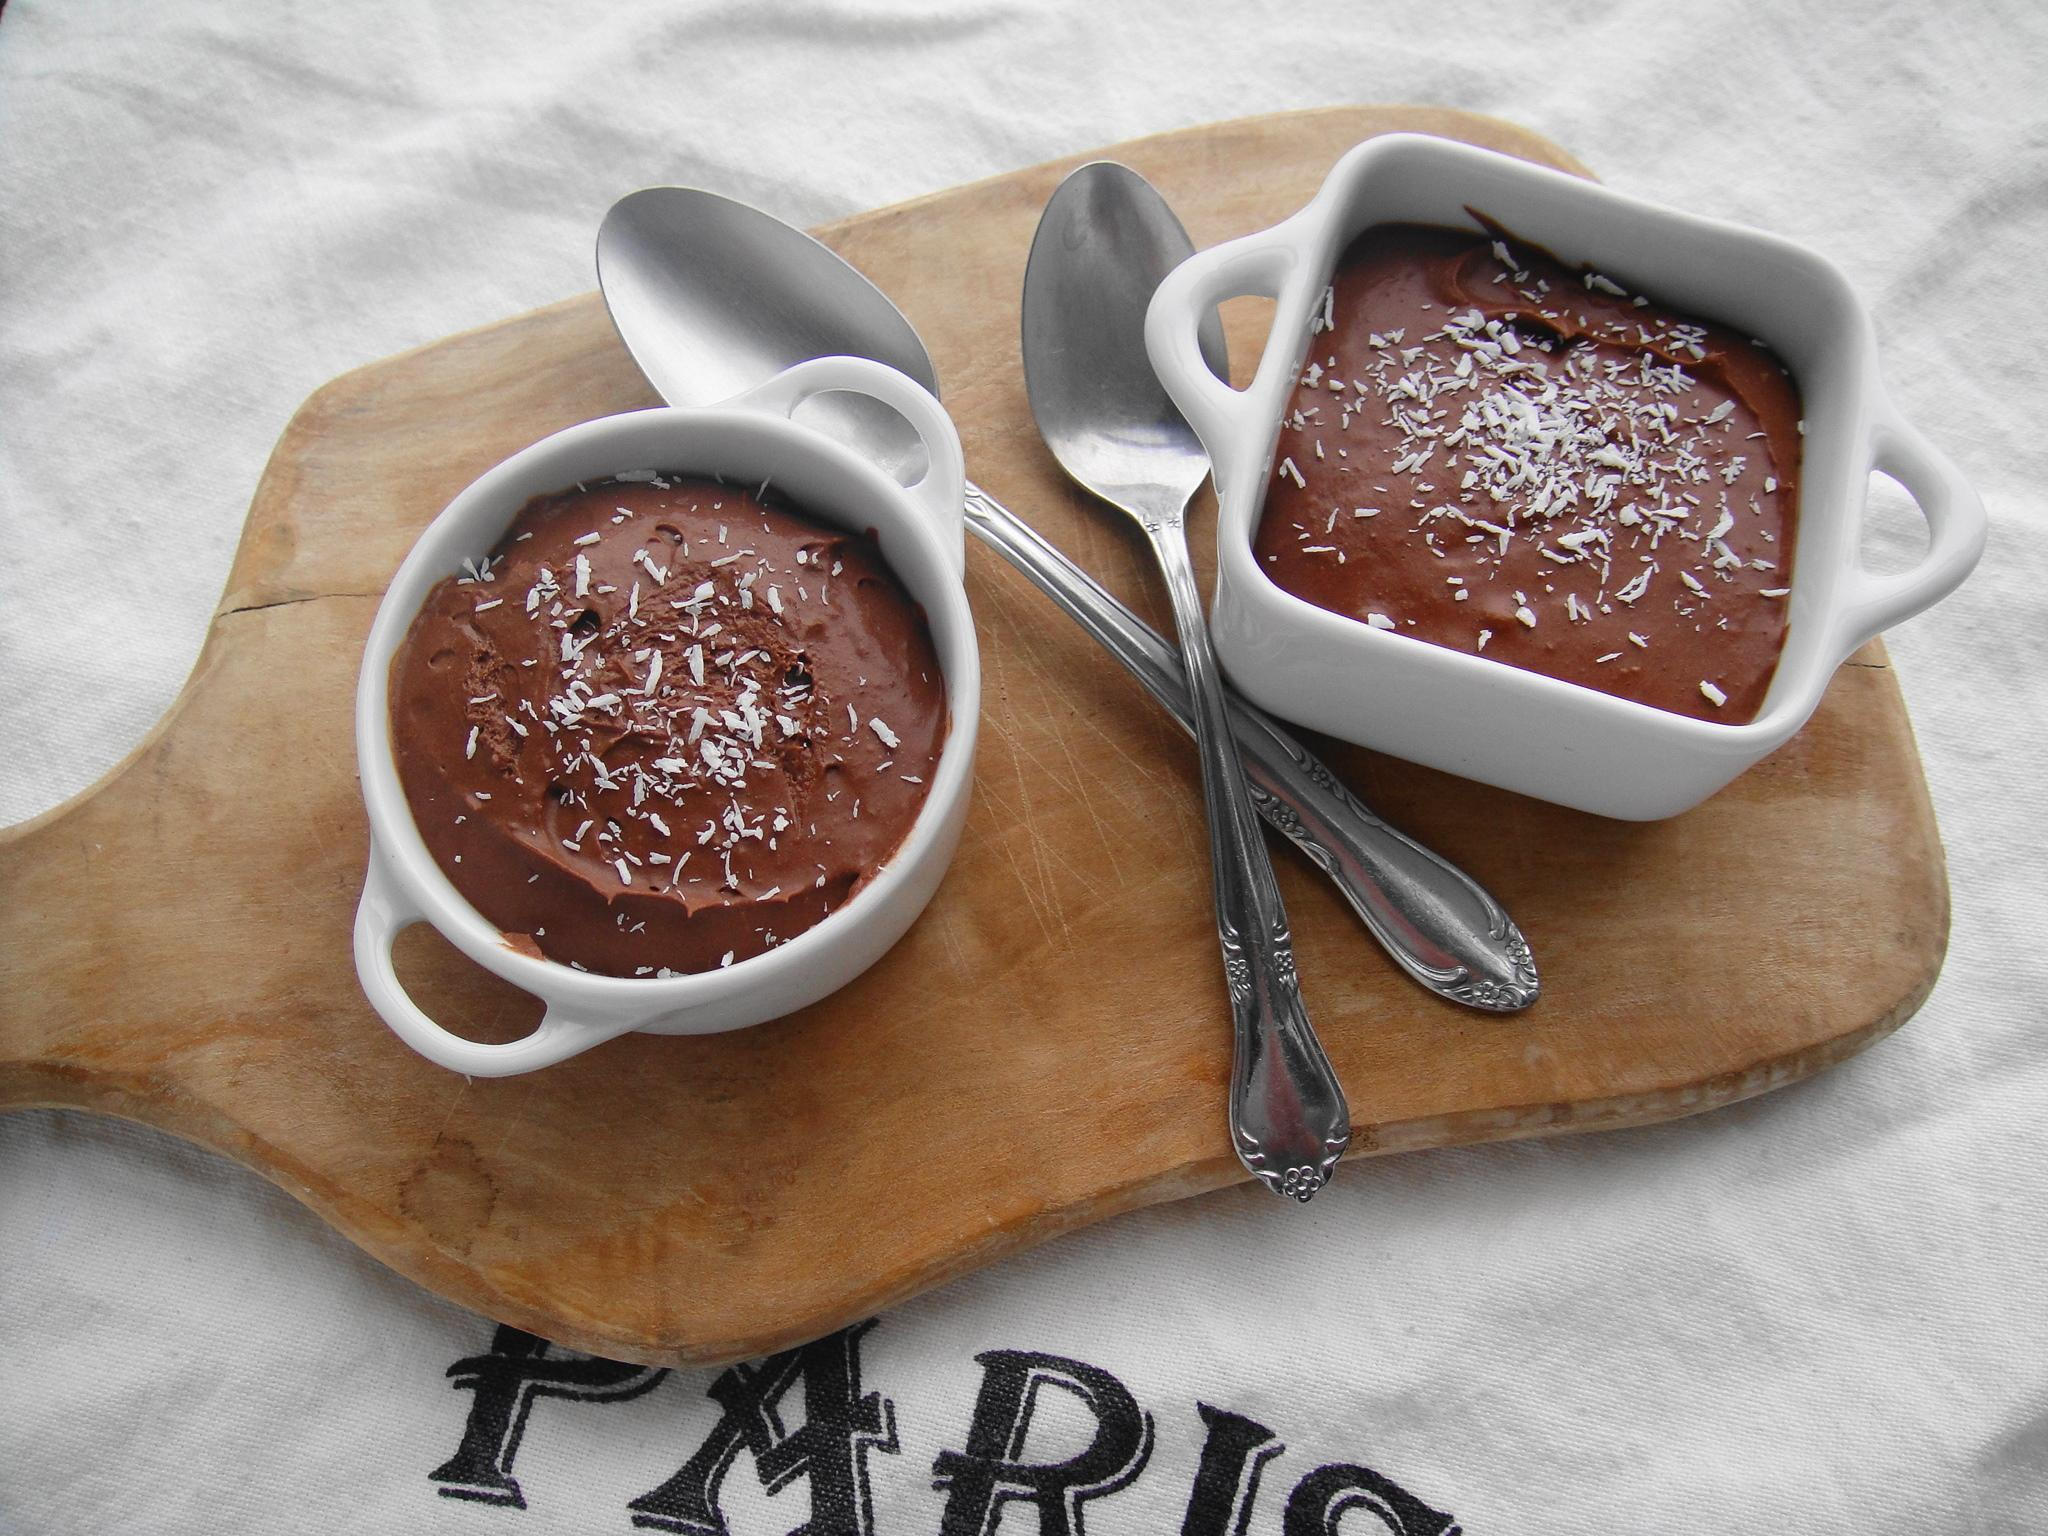 3 Ingredient Chocolate Mousse (Dairy & Egg Free)